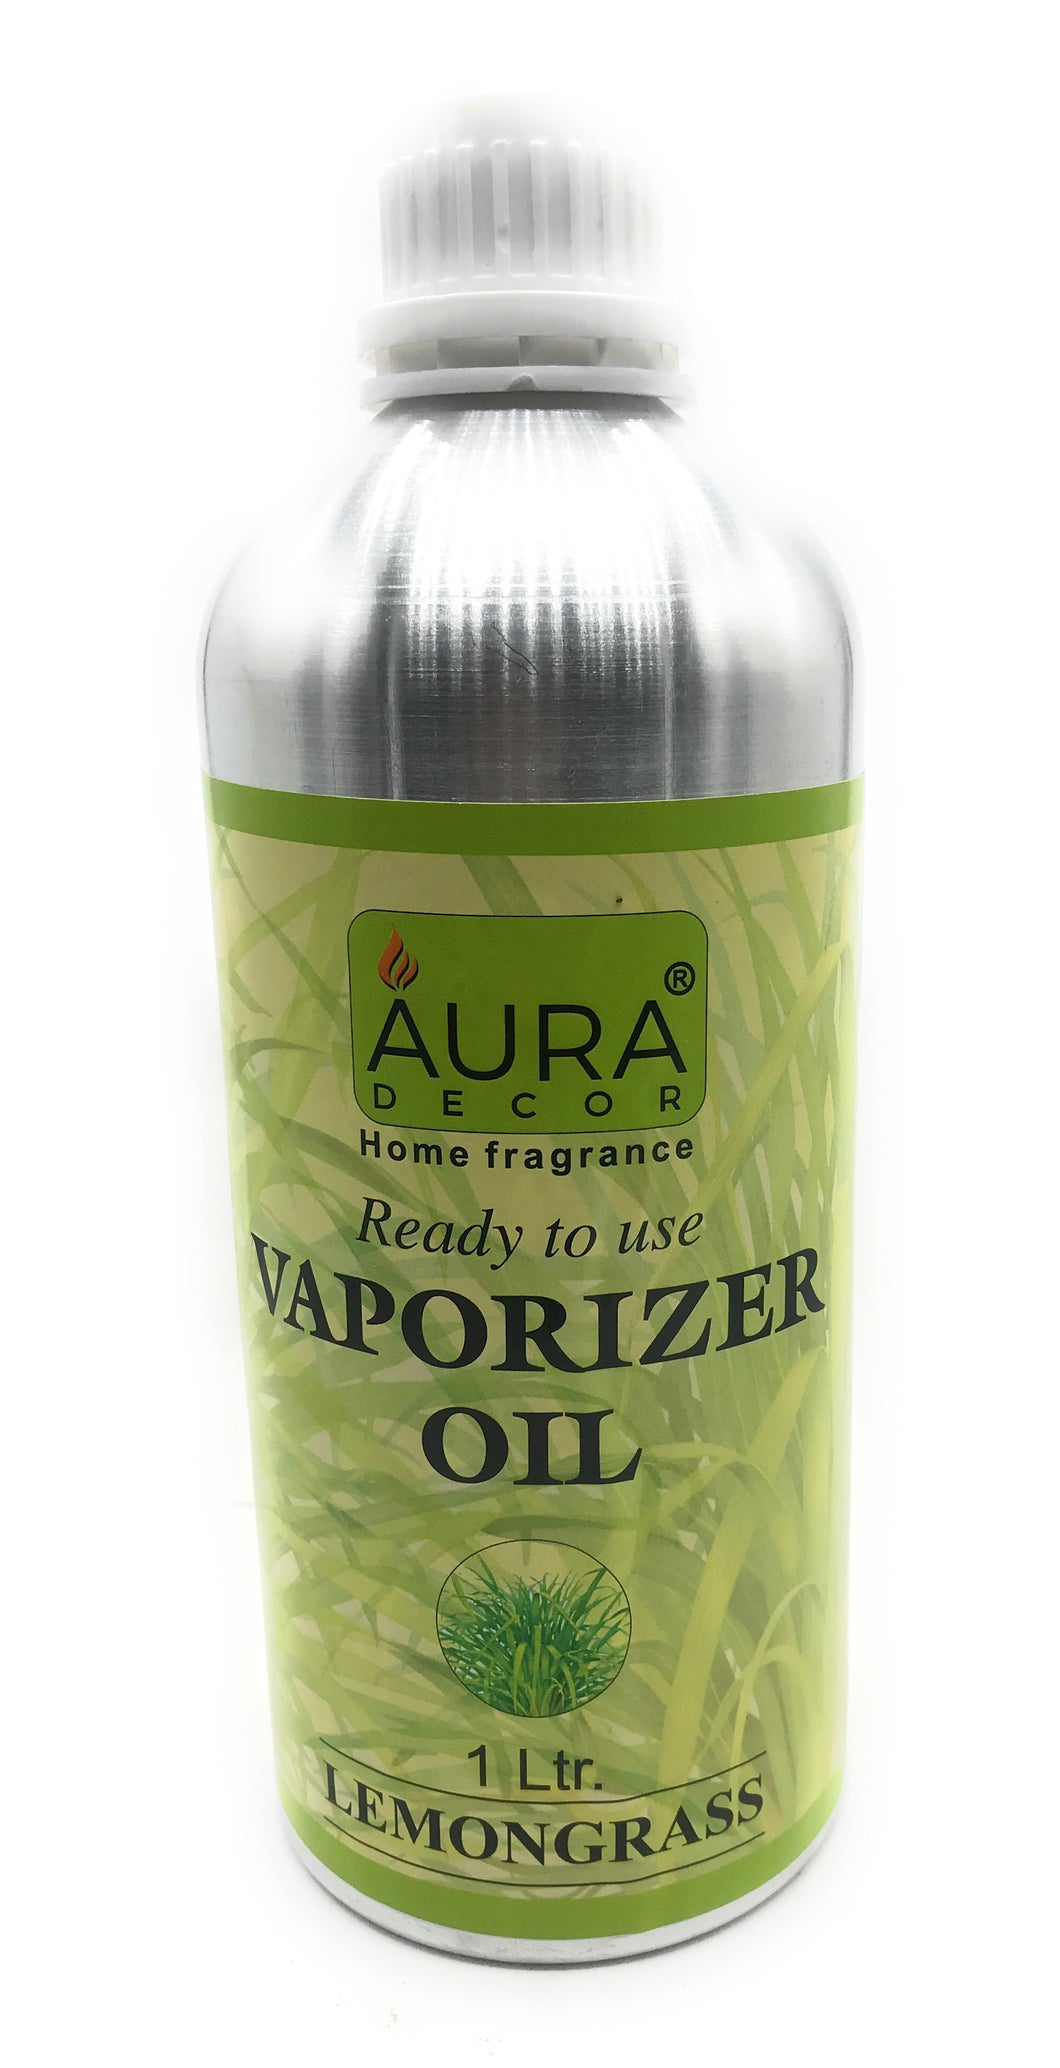 AuraDecor Ready to Use Vaporiser Oil LemonGrass 1 ltr - auradecor.co.in